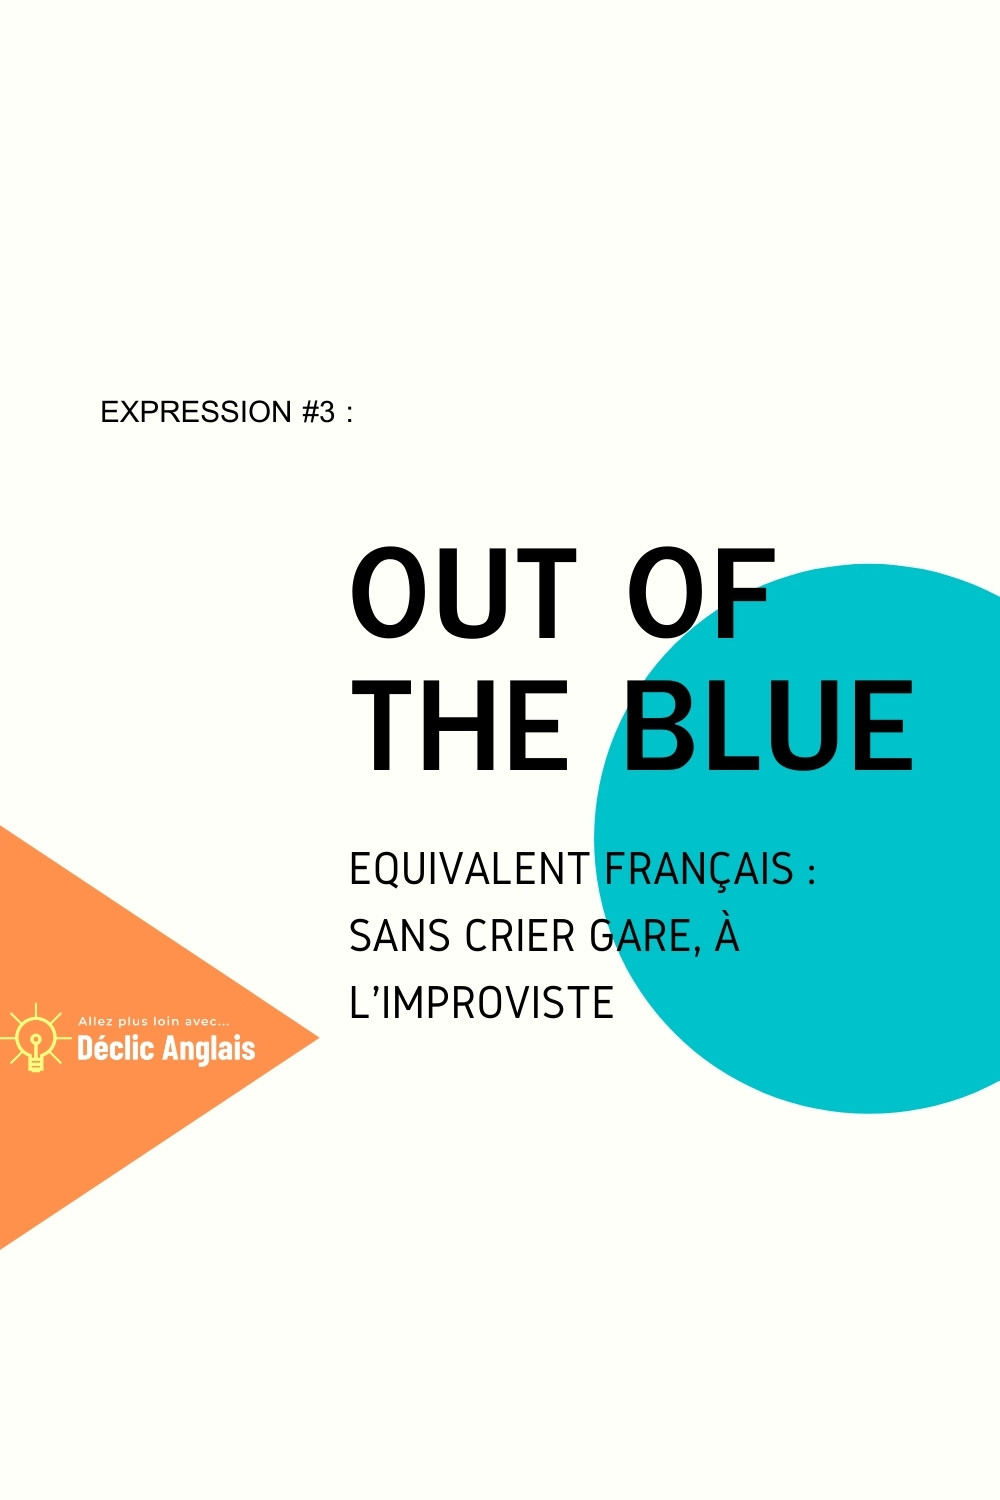 English expression out of the blue explained in French